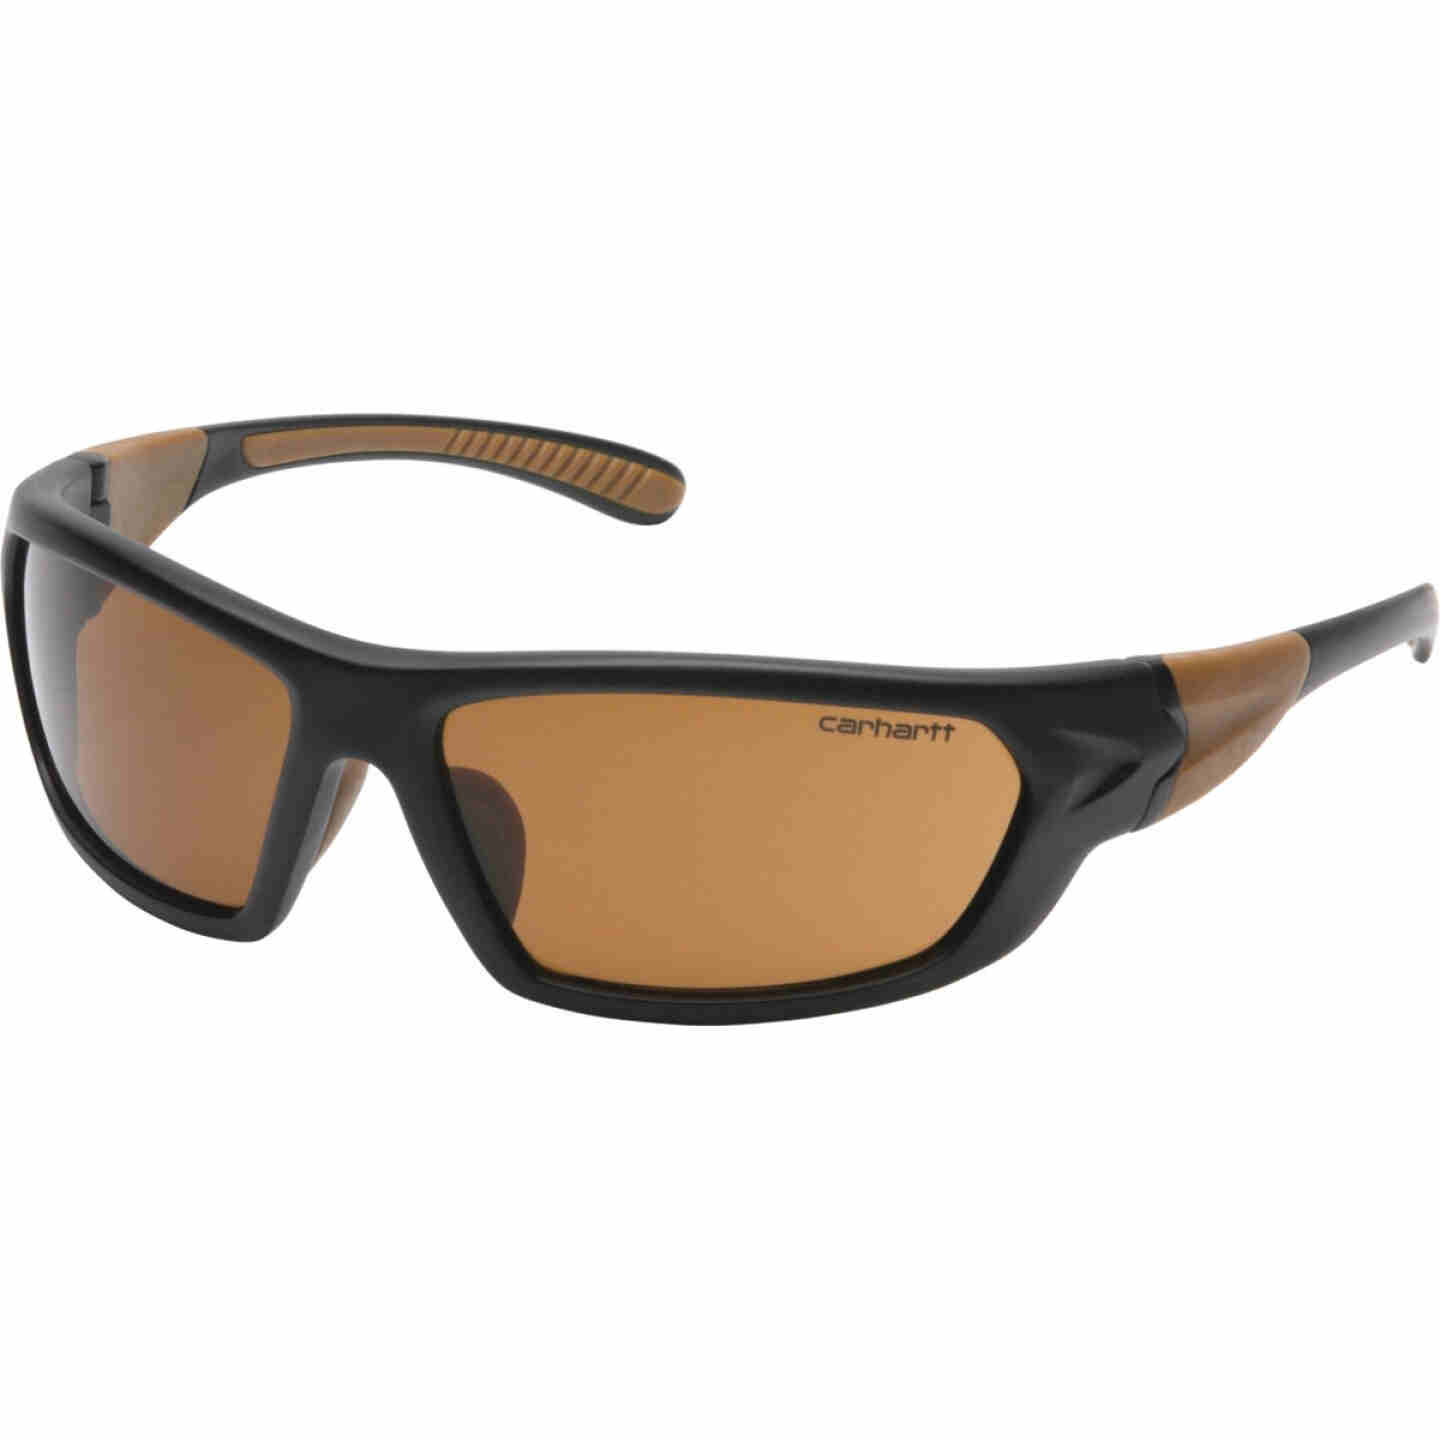 Carhartt Carbondale Black & Tan Frame Safety Glasses with Bronze Lenses Image 1